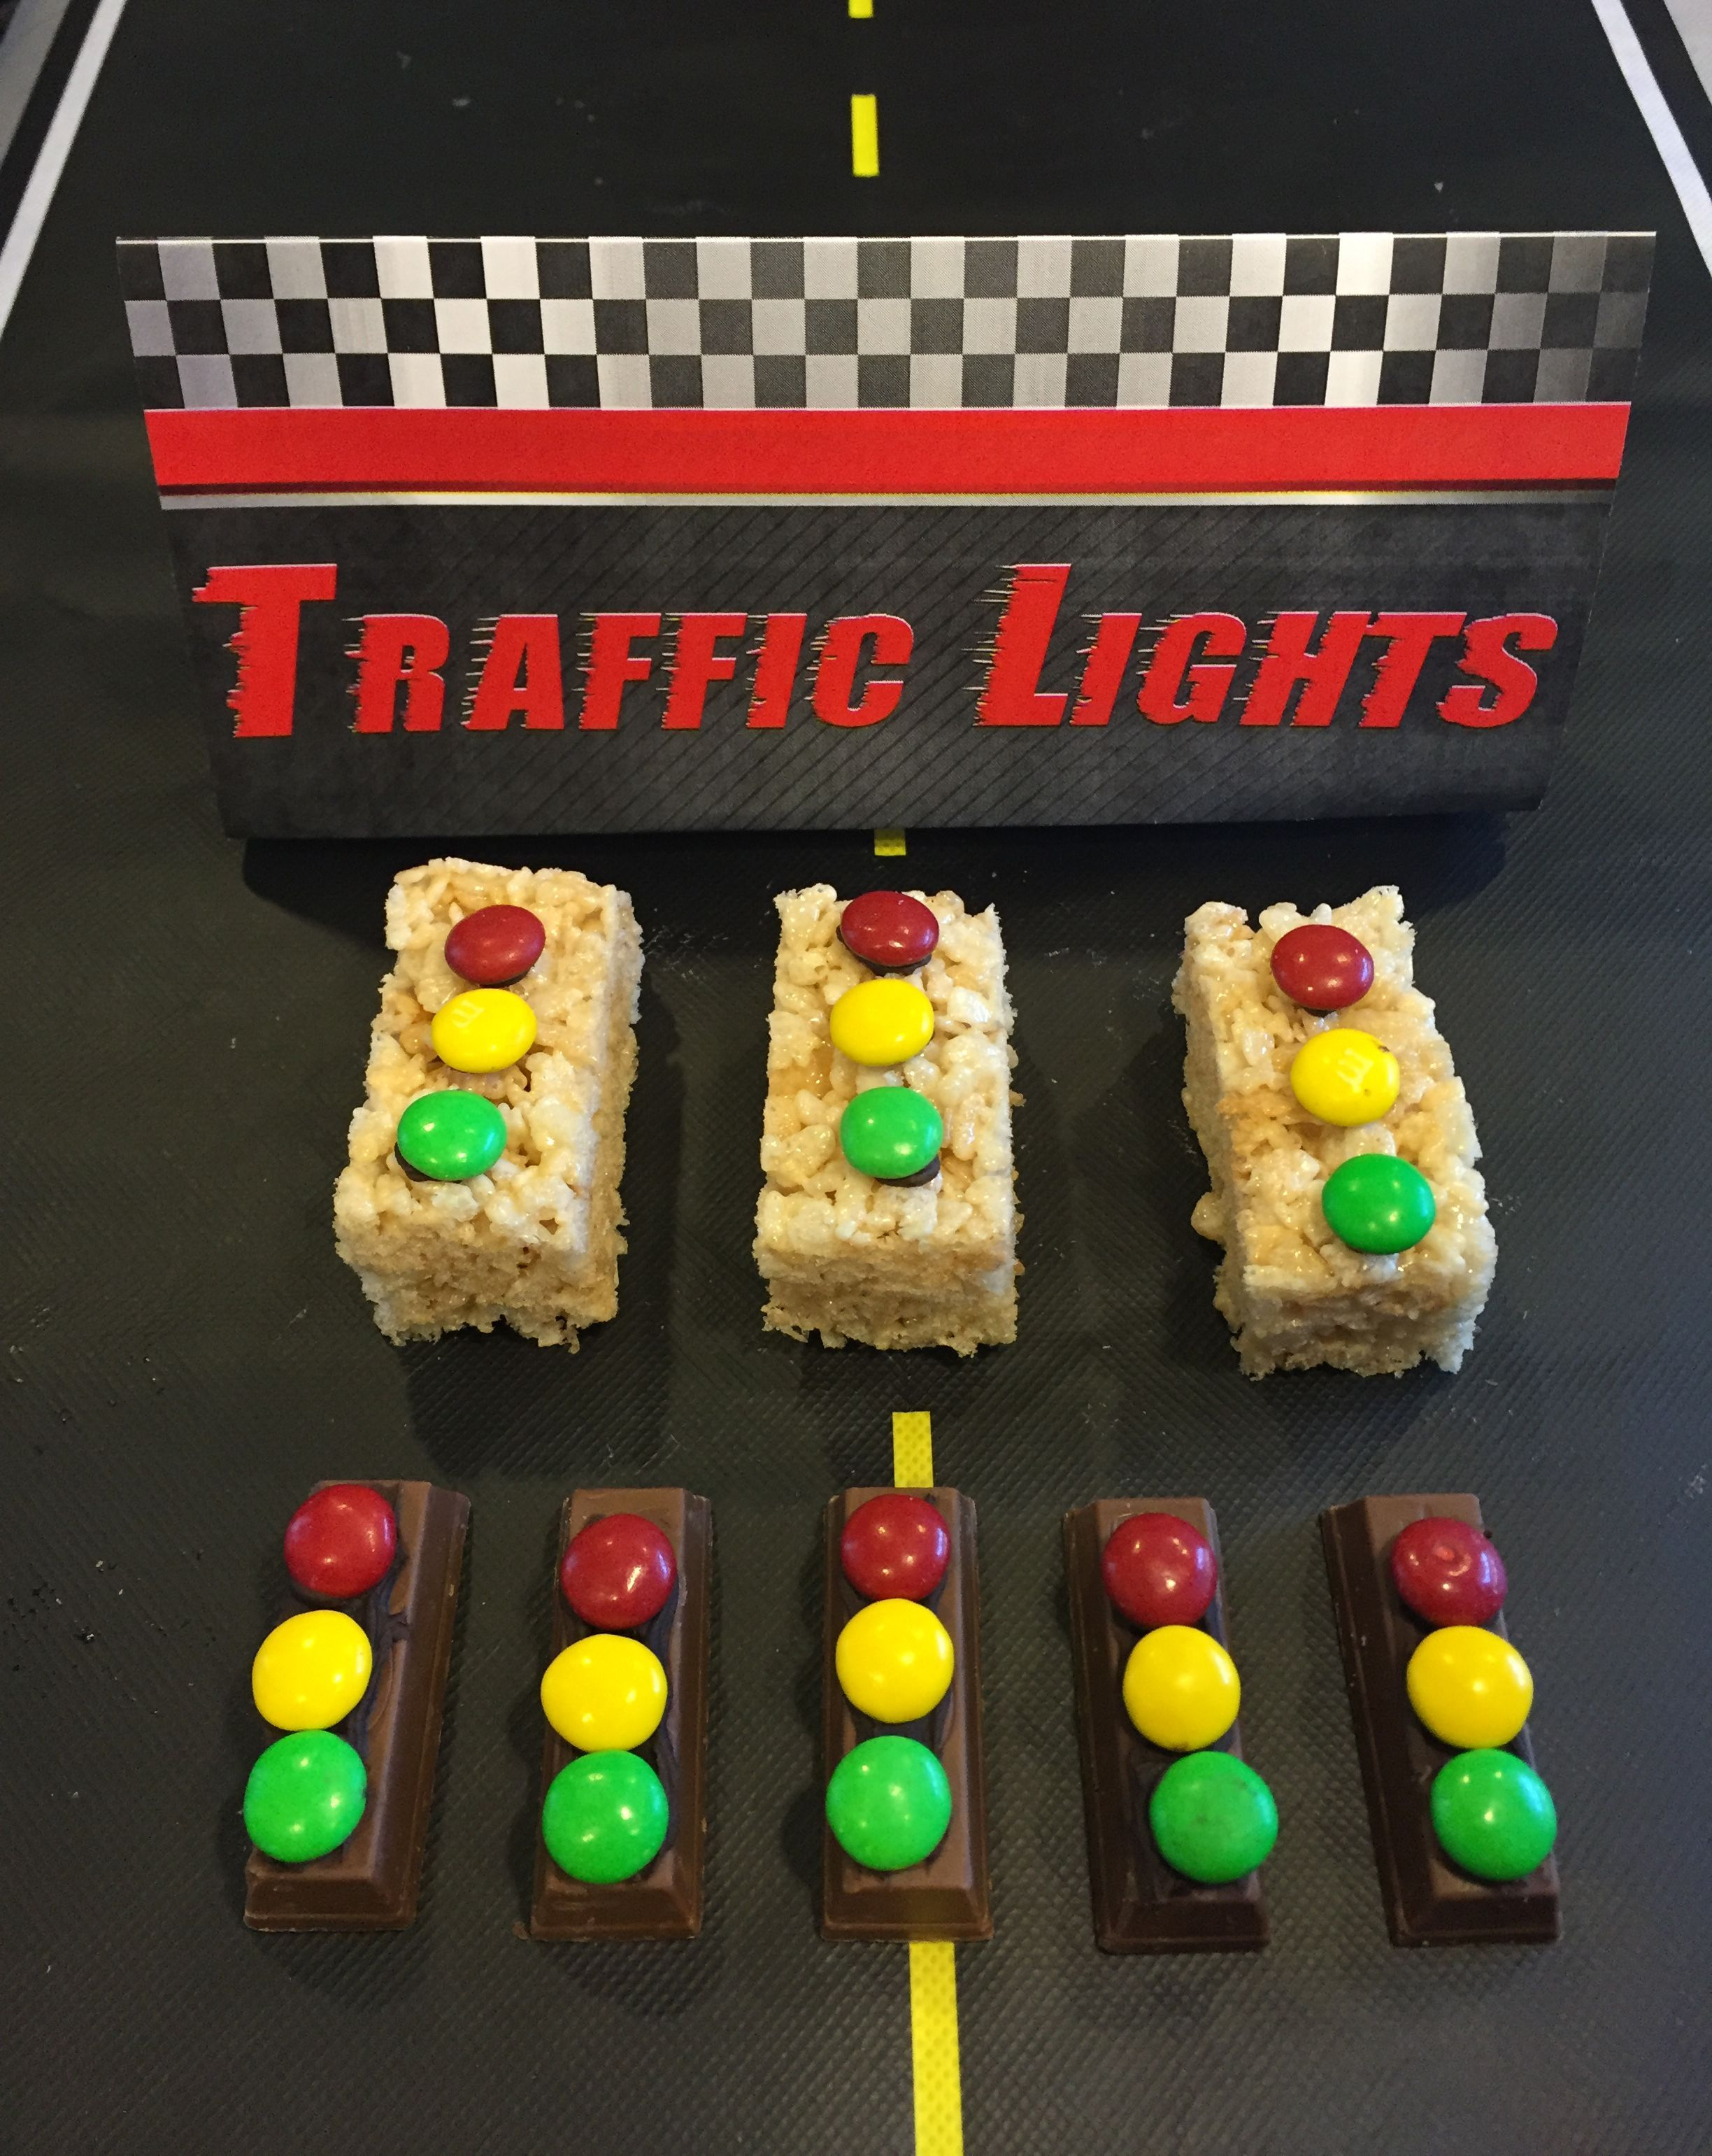 Make traffic lights for your pinewood derby. Stick red, yellow and green candies to candy bars, Rice Krispie treats, brownies or cookies with frosting. Download the table tent sign at www.shac.org/Data/Sites/1/media/activities/cub-scout/pinewood-derby-table-tents.pdf. #cubscouts